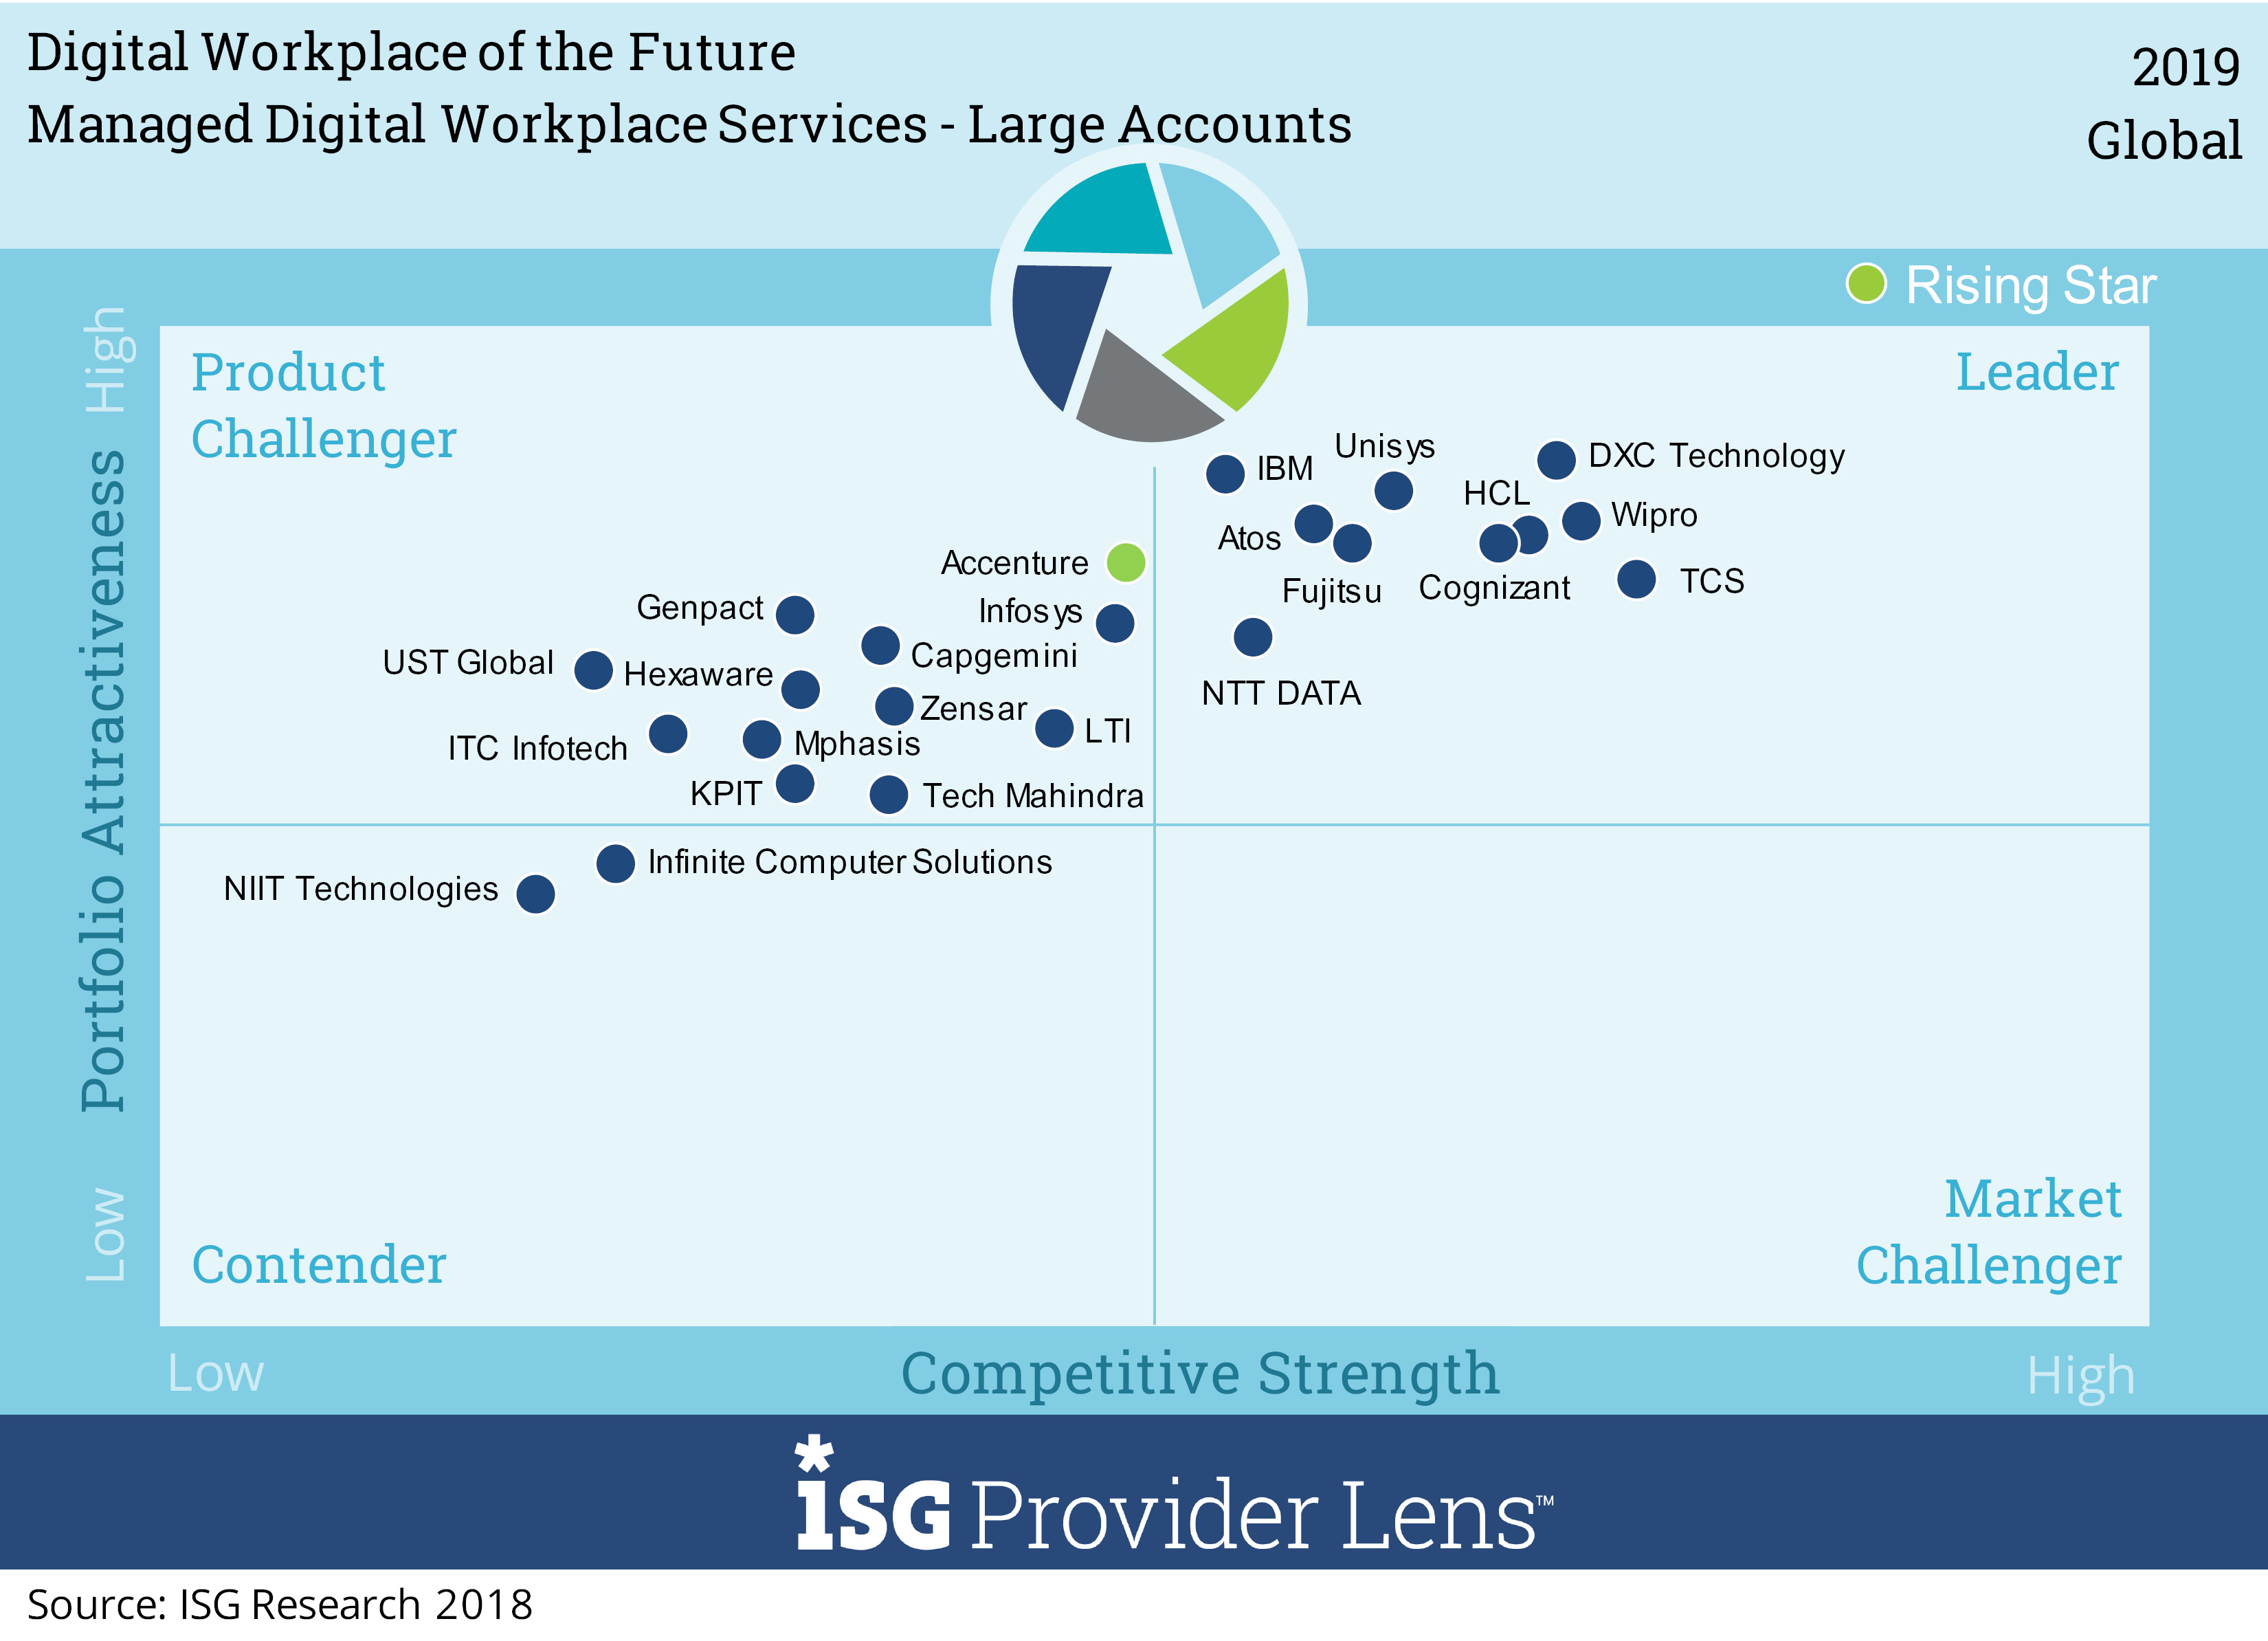 Wipro has been positioned as a Global Leader in Digital Workplace of the Future ISG Provider Lens study 2019